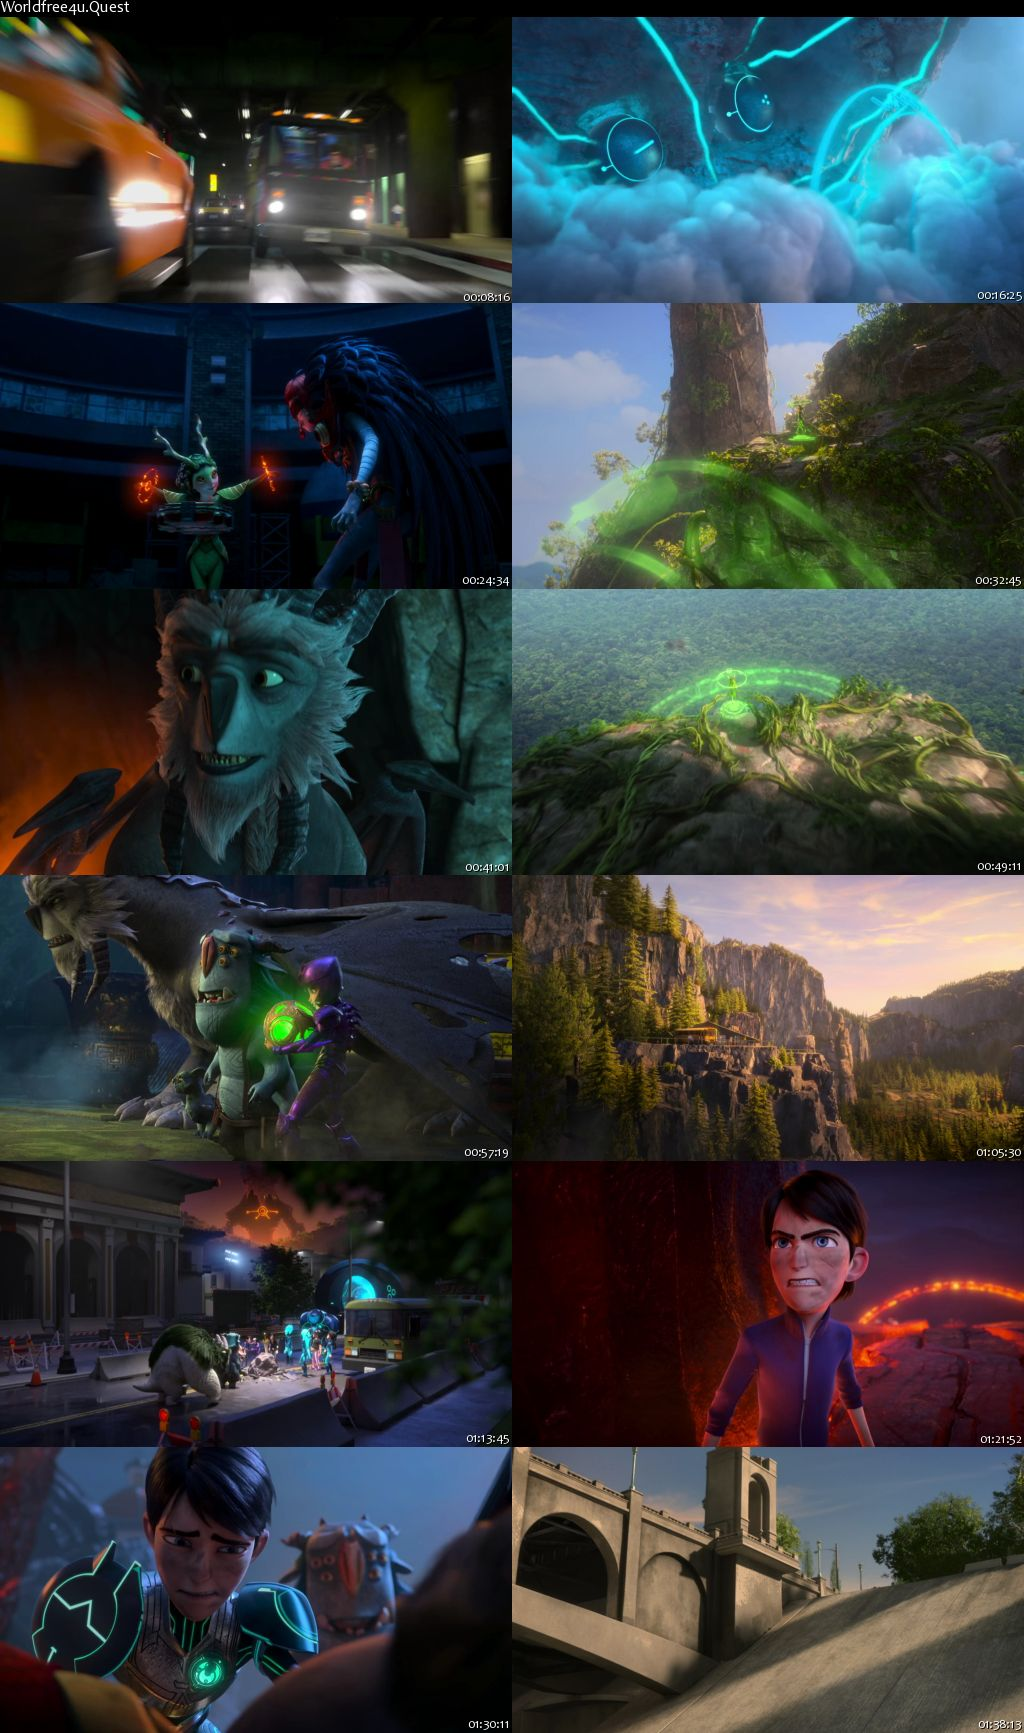 Trollhunters: Rise of the Titans 2021 HDRip 480p Dual Audio 300Mb